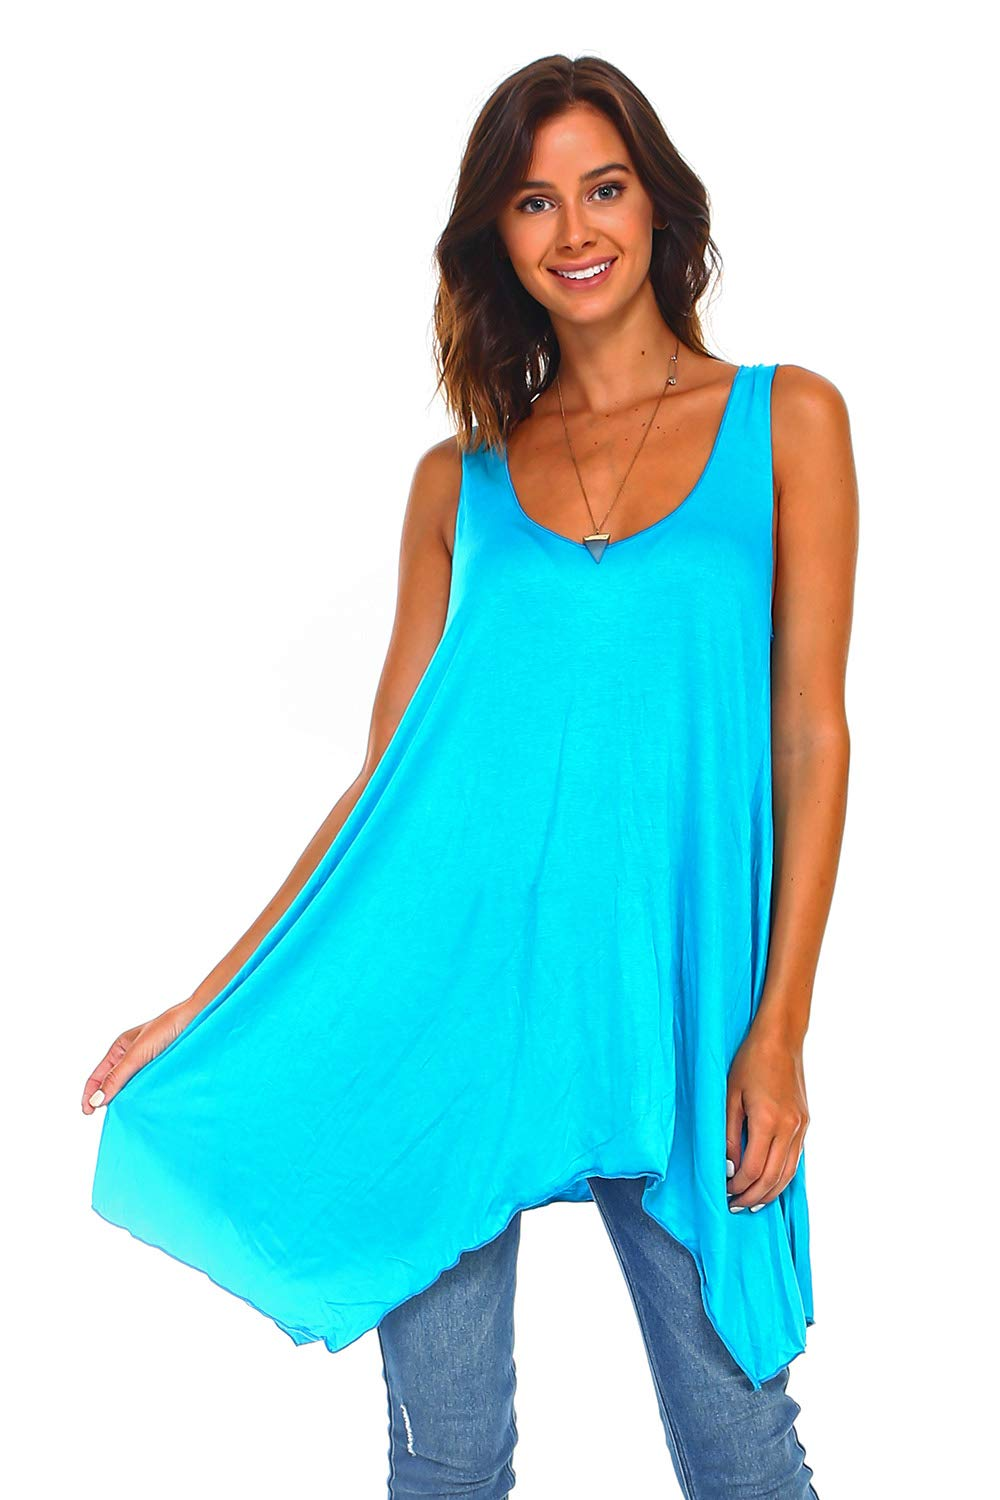 Simplicitie Women's Sleeveless Swing Flare Tunic Dress Tank Top - Regular and Plus Size - Turquoise - Made in USA